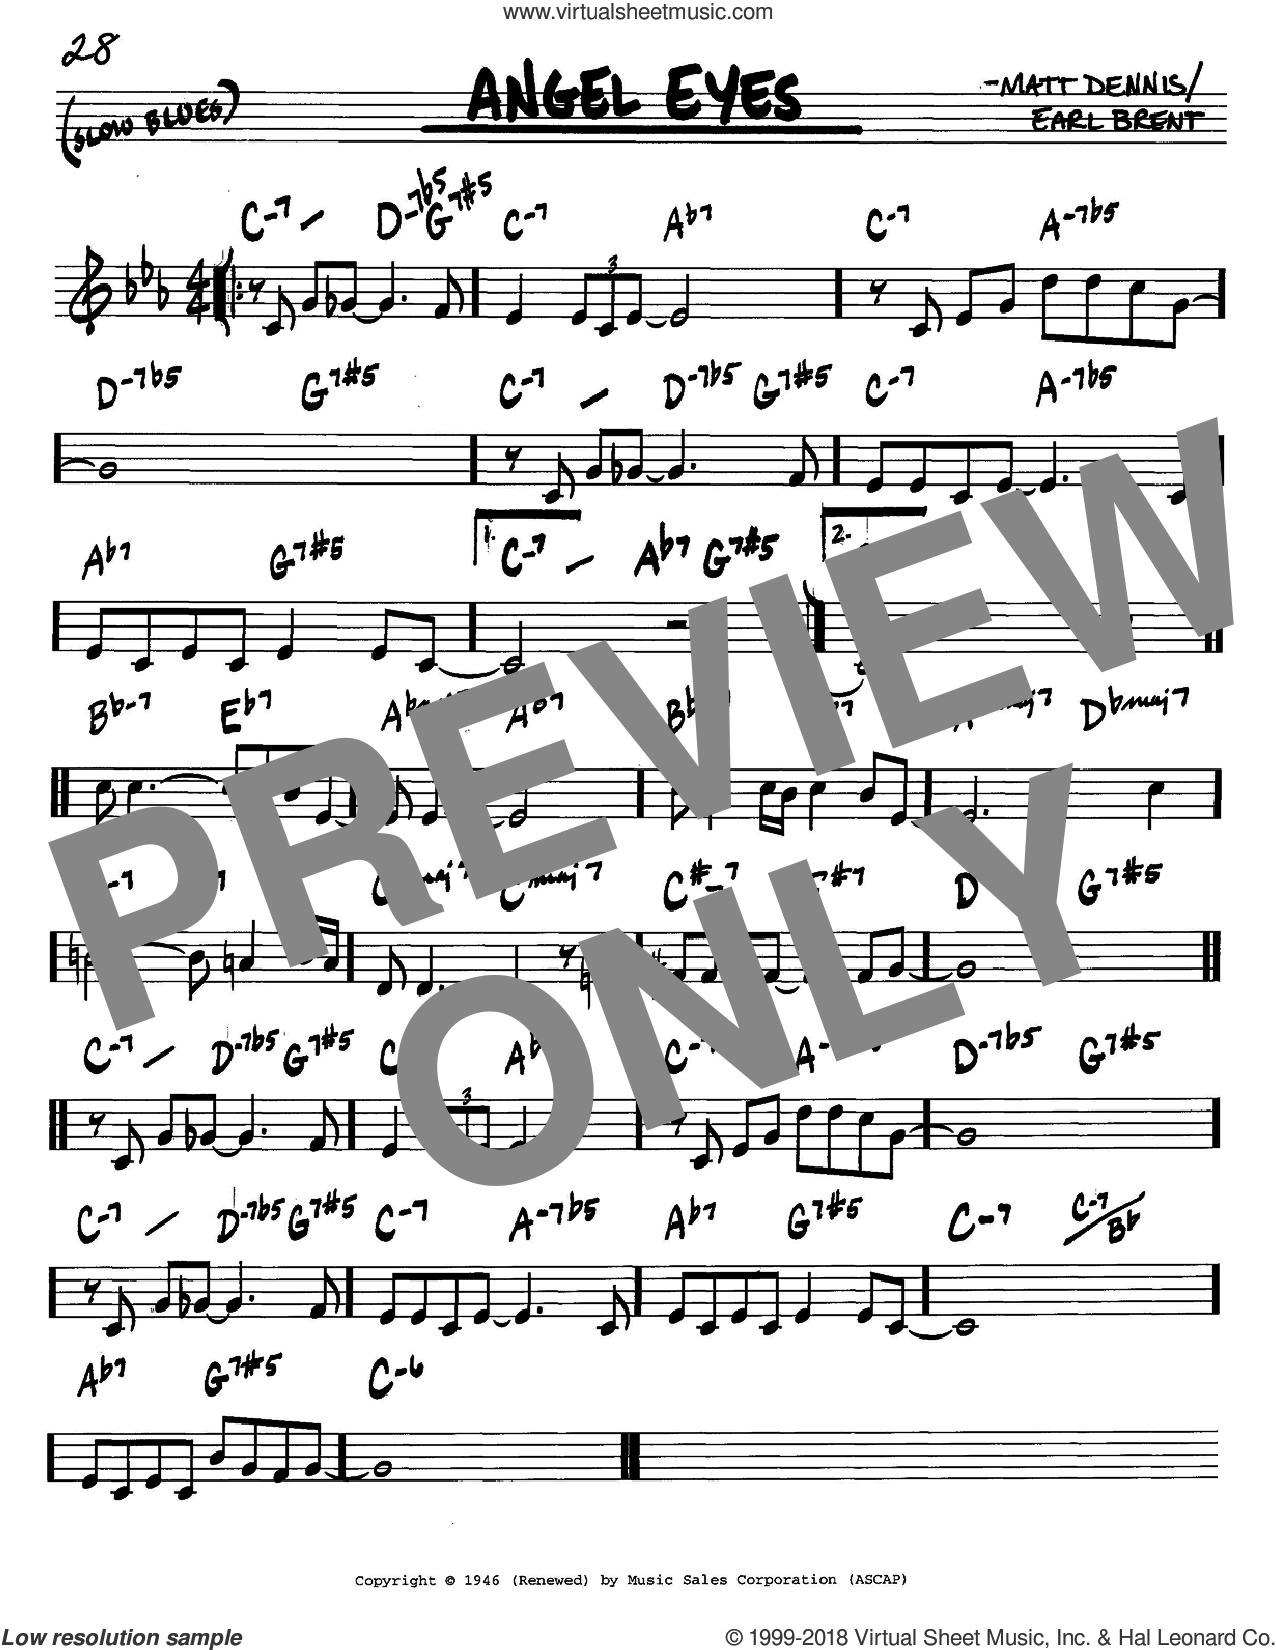 Angel Eyes sheet music for voice and other instruments (in C) by Frank Sinatra, Earl Brent and Matt Dennis, intermediate. Score Image Preview.